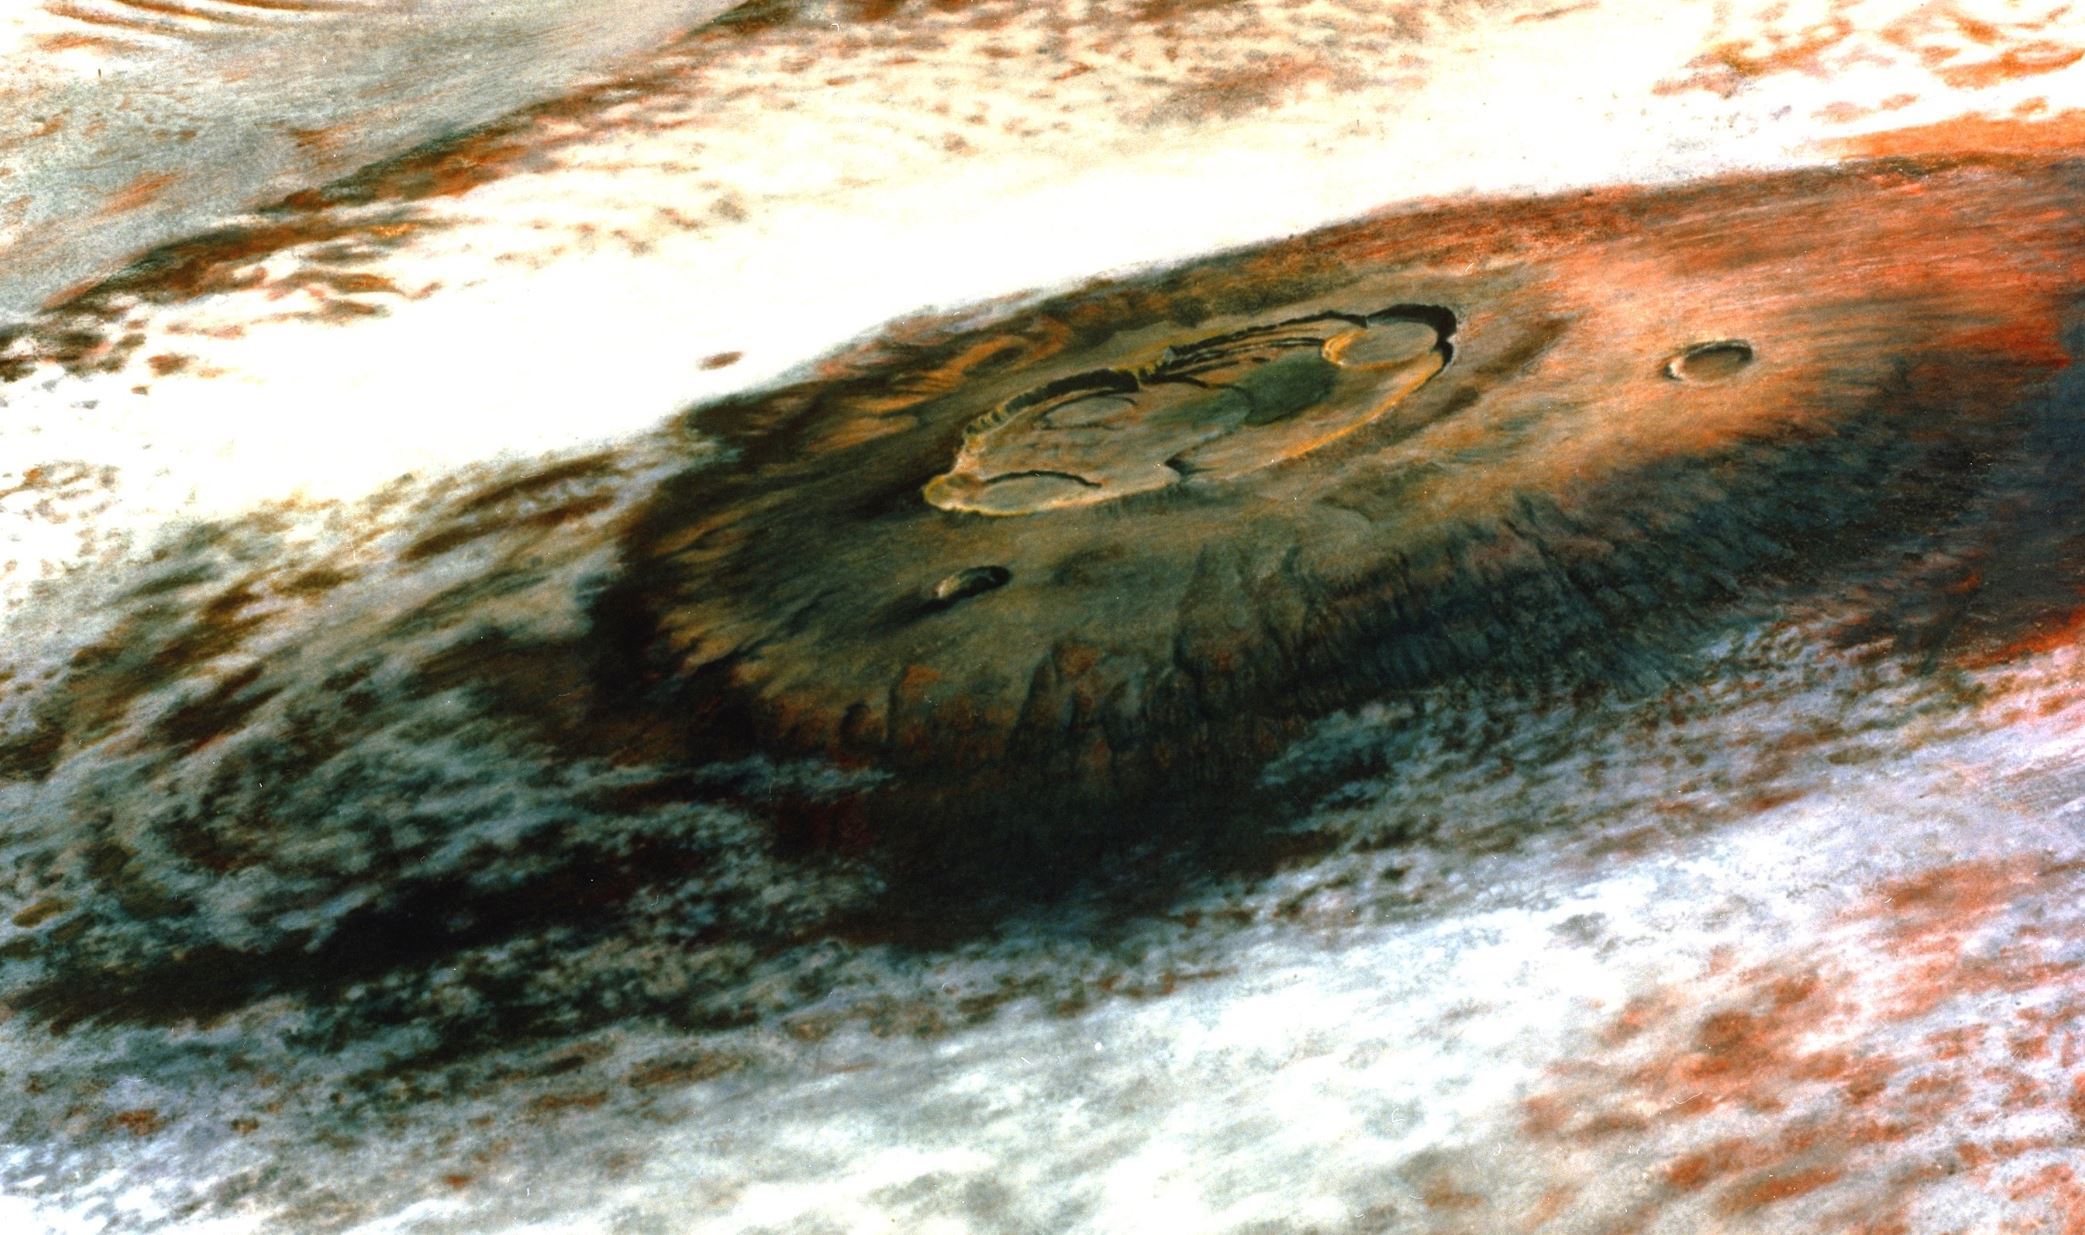 The solar system's largest volcano Olympus Mons on Mars, seen by Viking 1. - Image Credit: NASA/JPL